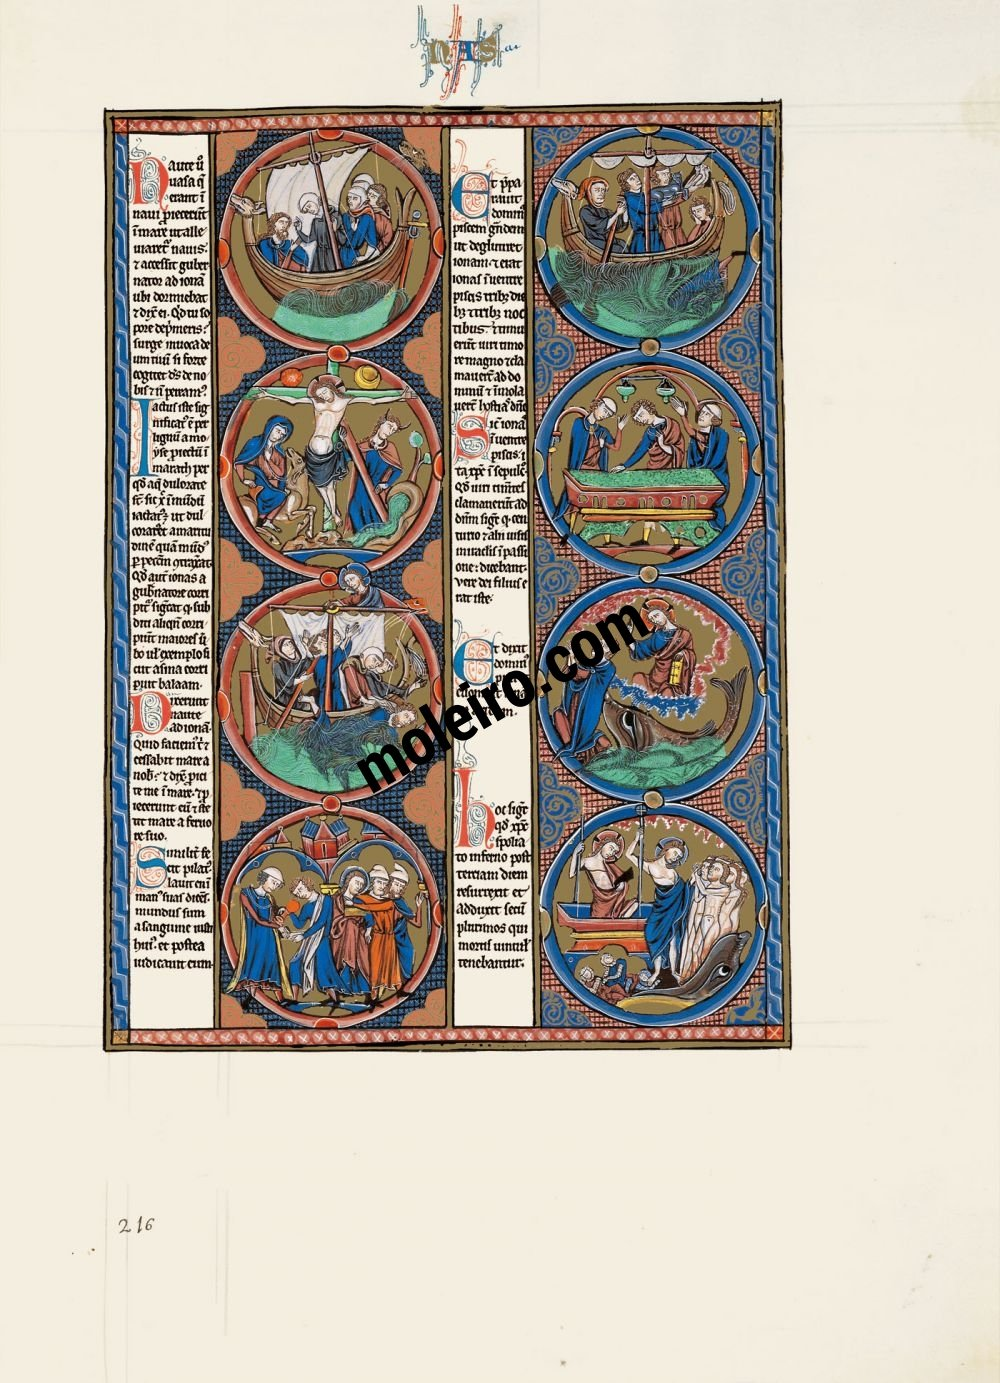 The Bible of St Louis vol.2, f. 216r